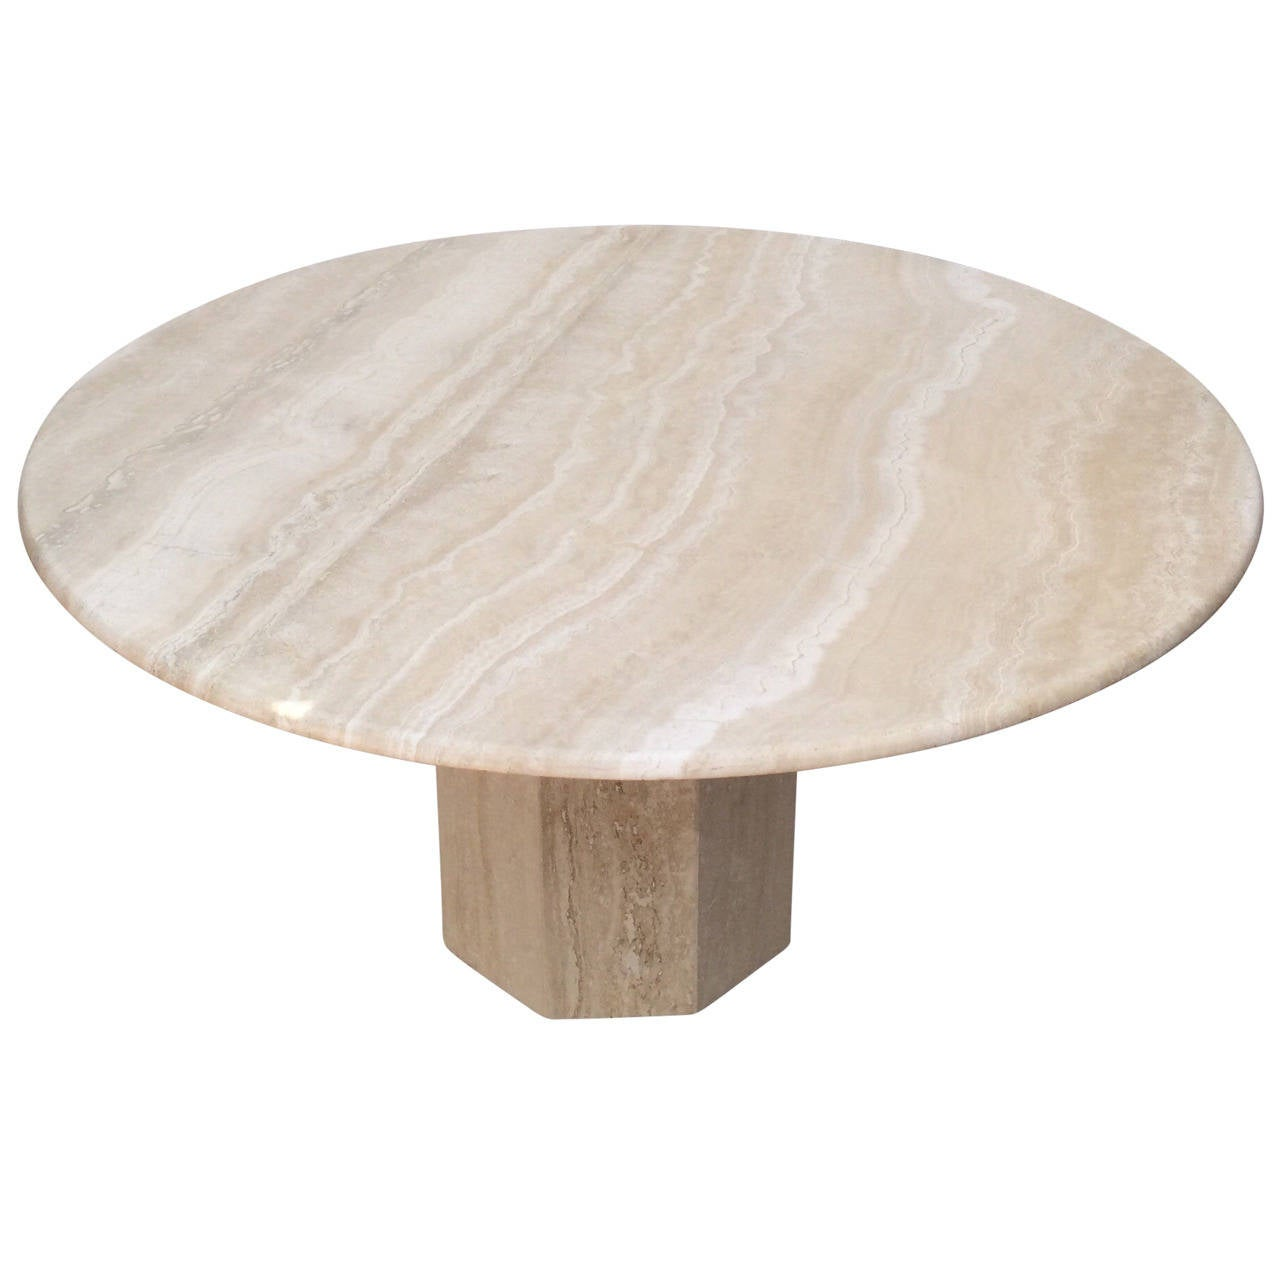 Travertine Dining Room Table Travertine Dining Table At 1stdibs